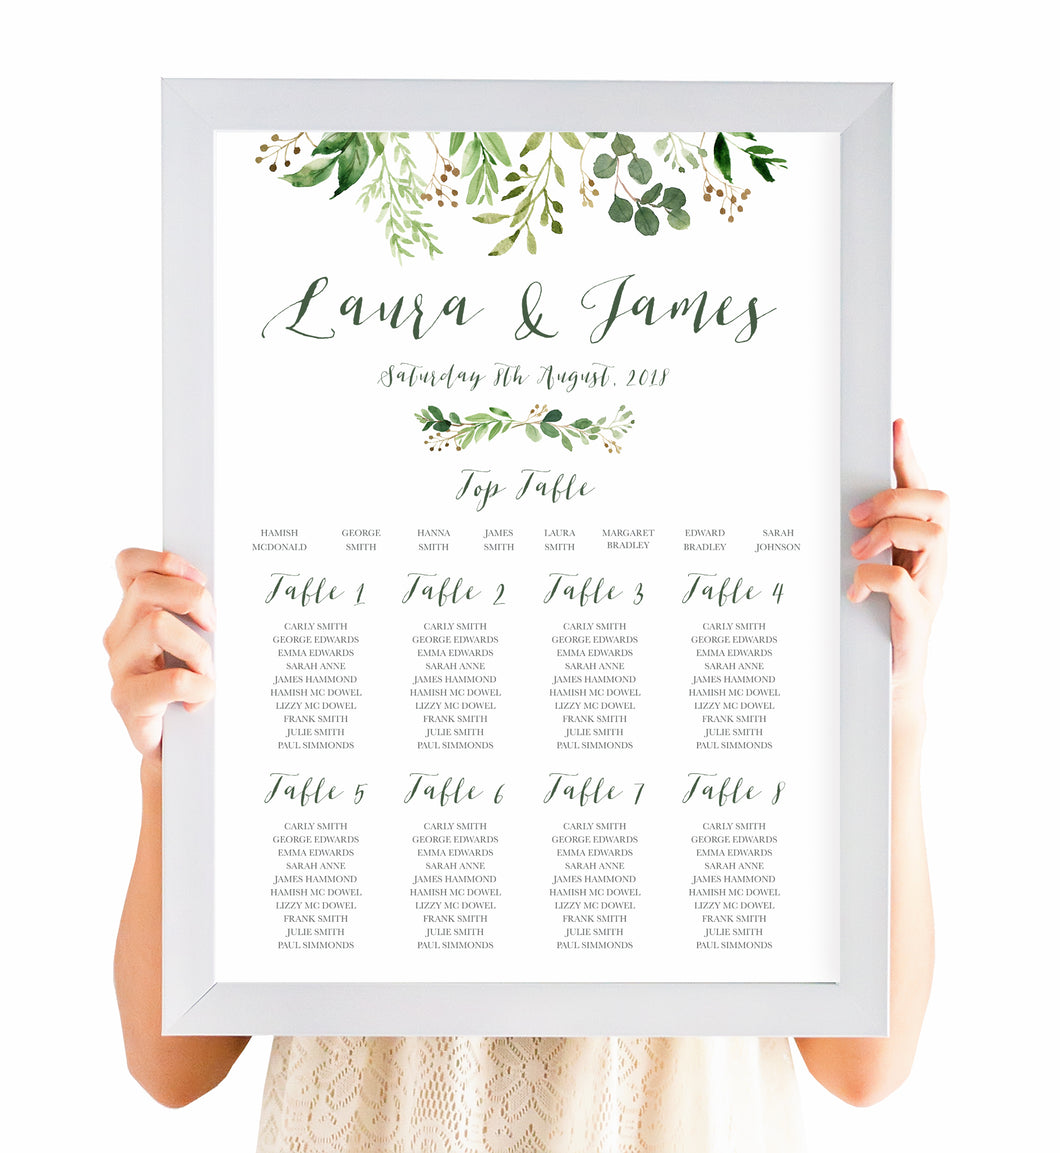 Green Leaf Table Plan, Seating Plan, Watercolour Foliage, Greenery, Eucalyptus Invites, Green Wreath, Botanical Wedding, A2 Size